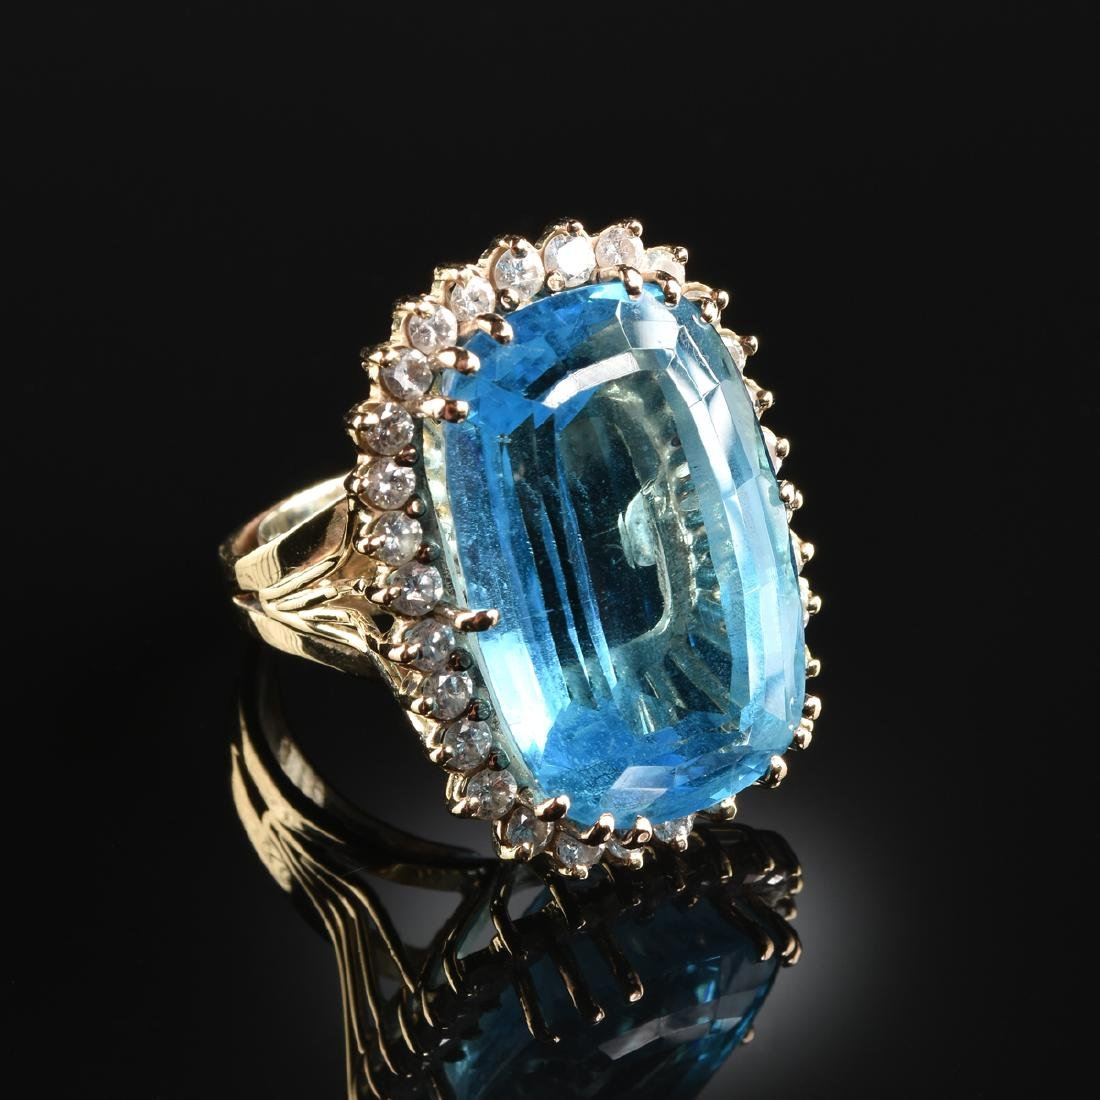 A 14K YELLOW GOLD, BLUE TOPAZ, AND DIAMOND LADY'S RING,